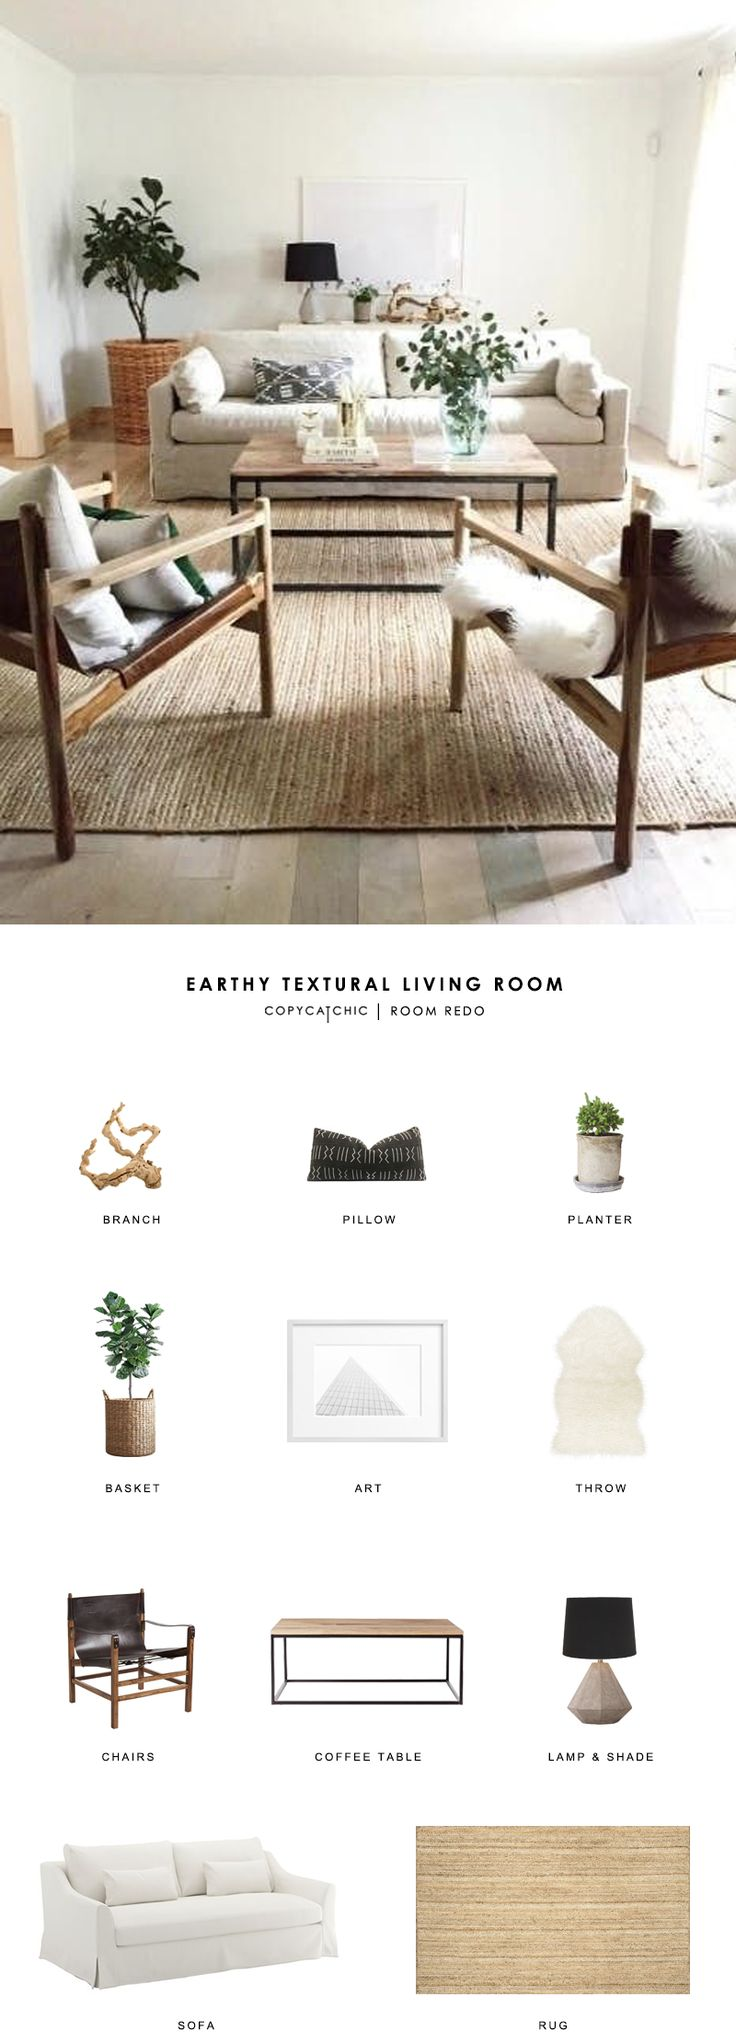 Copy Cat Chic Room Redo Neutral Living RoomsEarthy